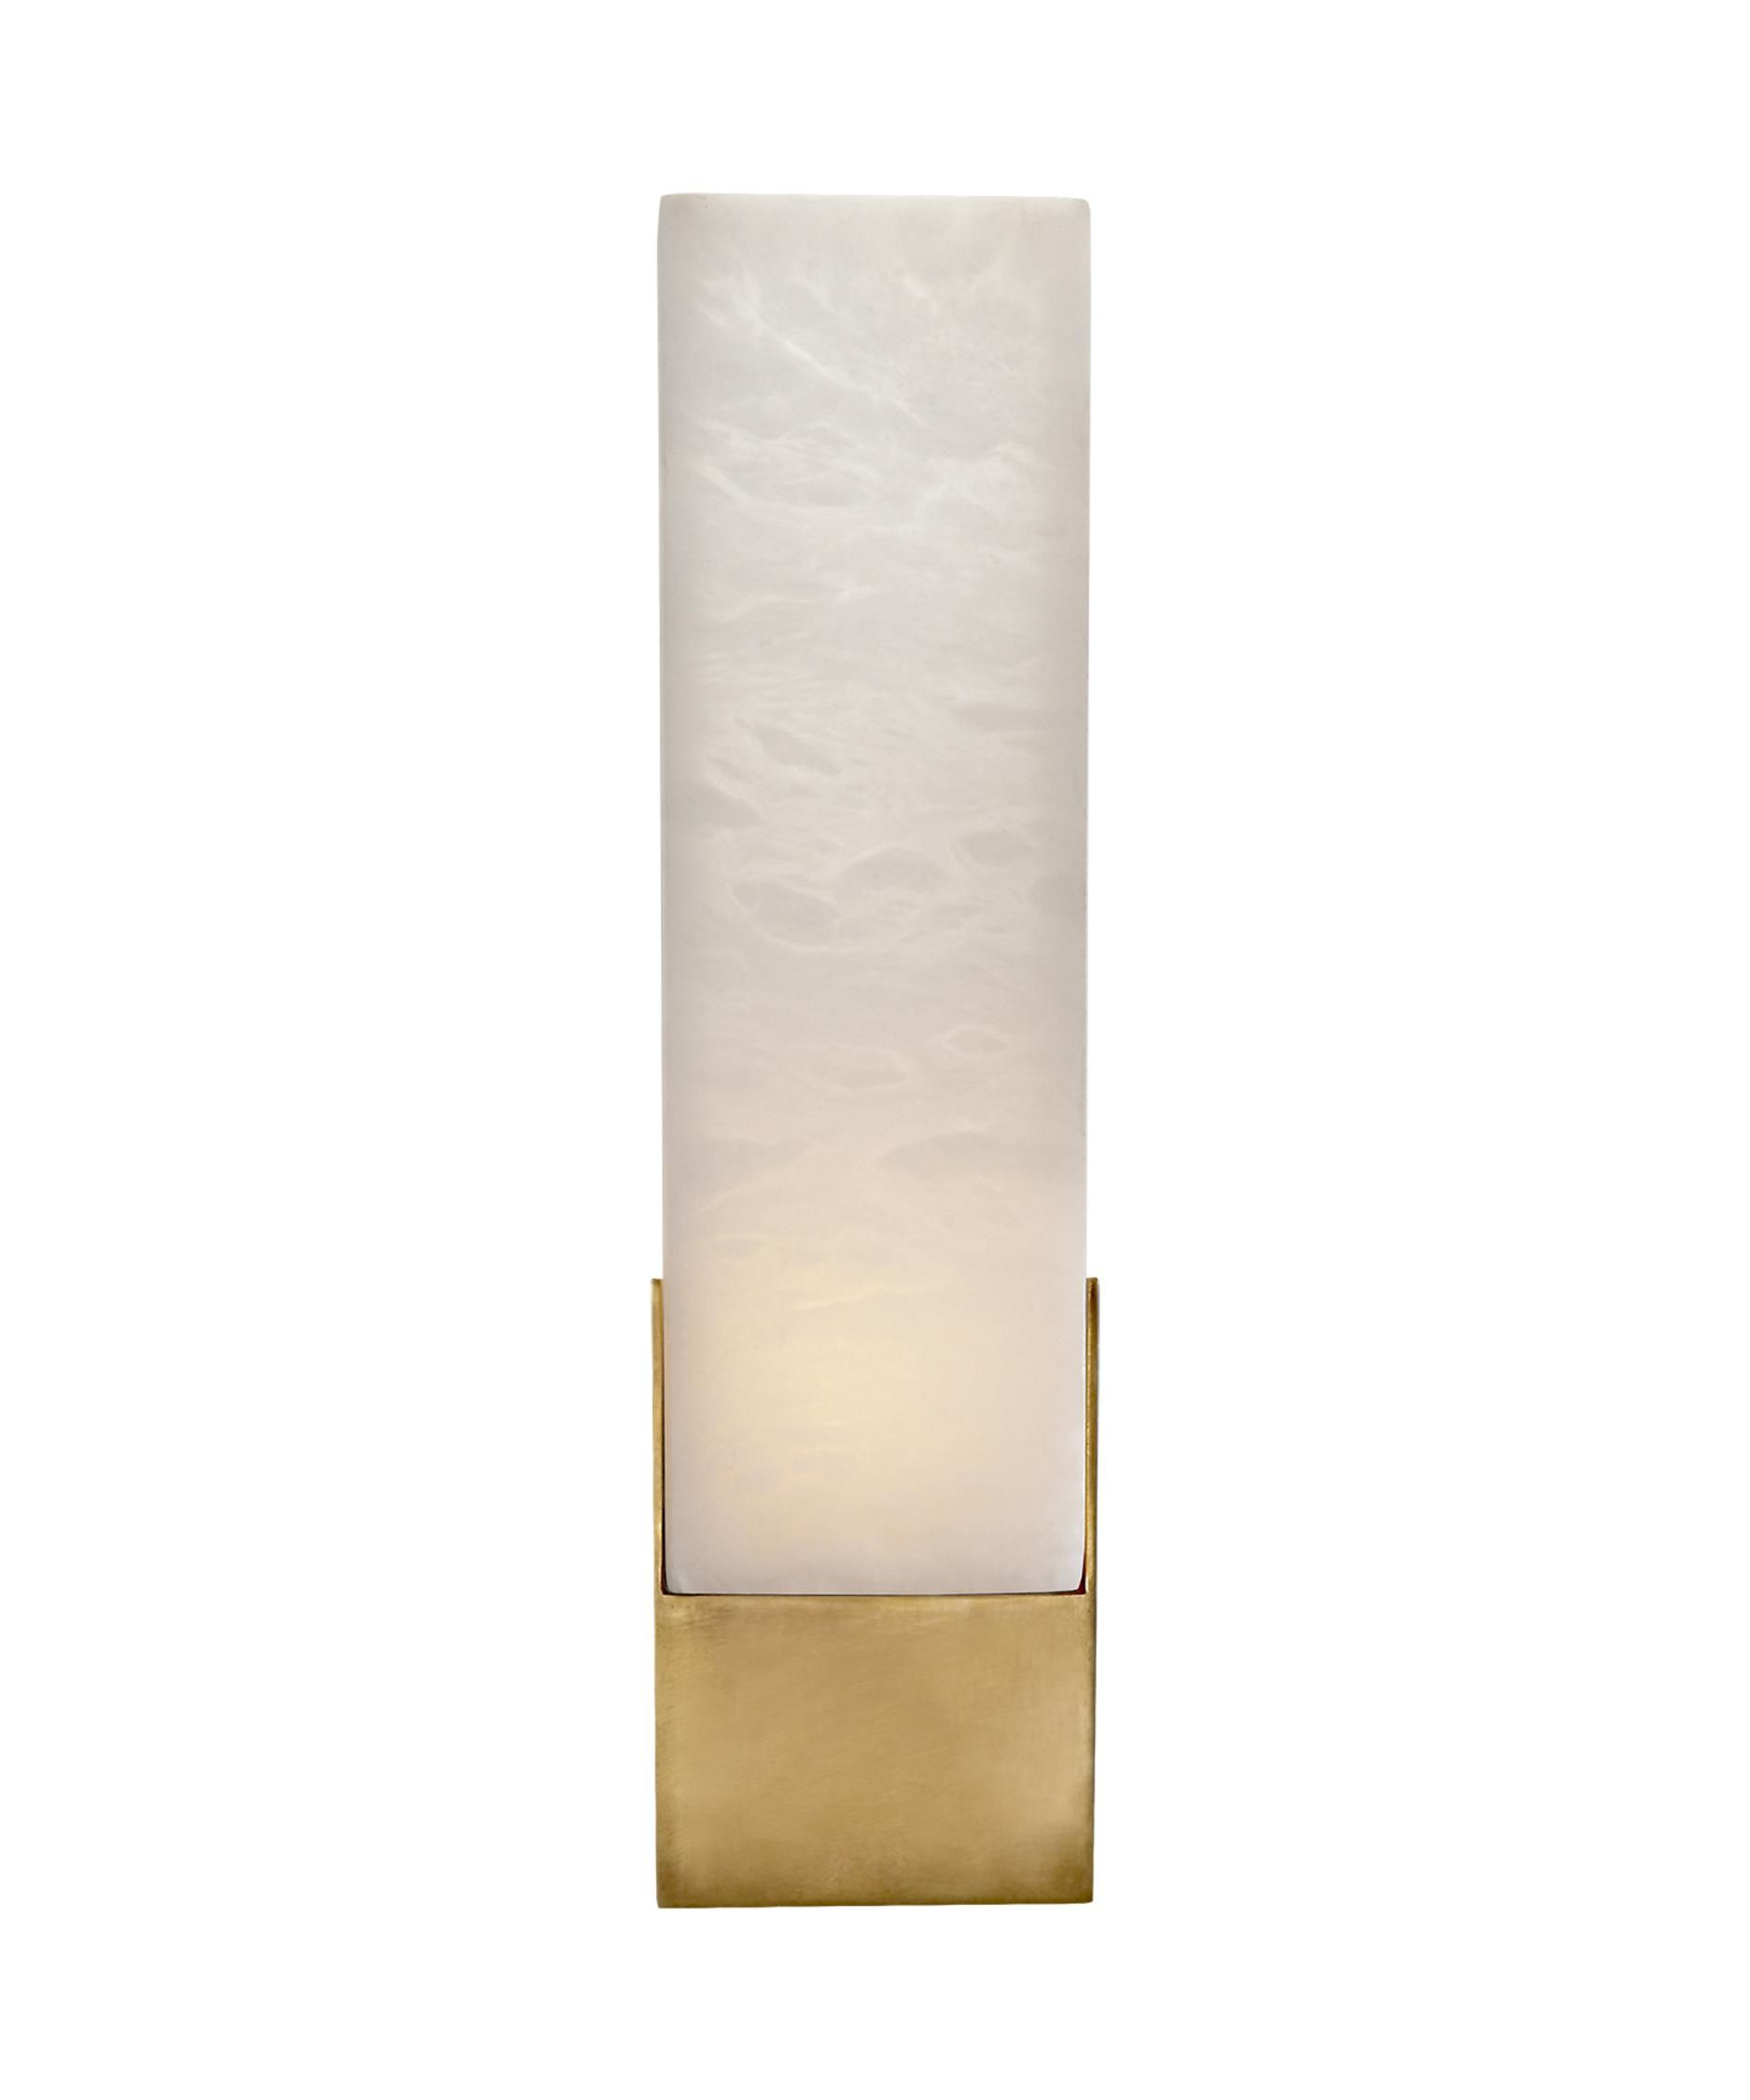 thomas to comfort x obrien pertaining wide germain sconce wall visual inch sconces size